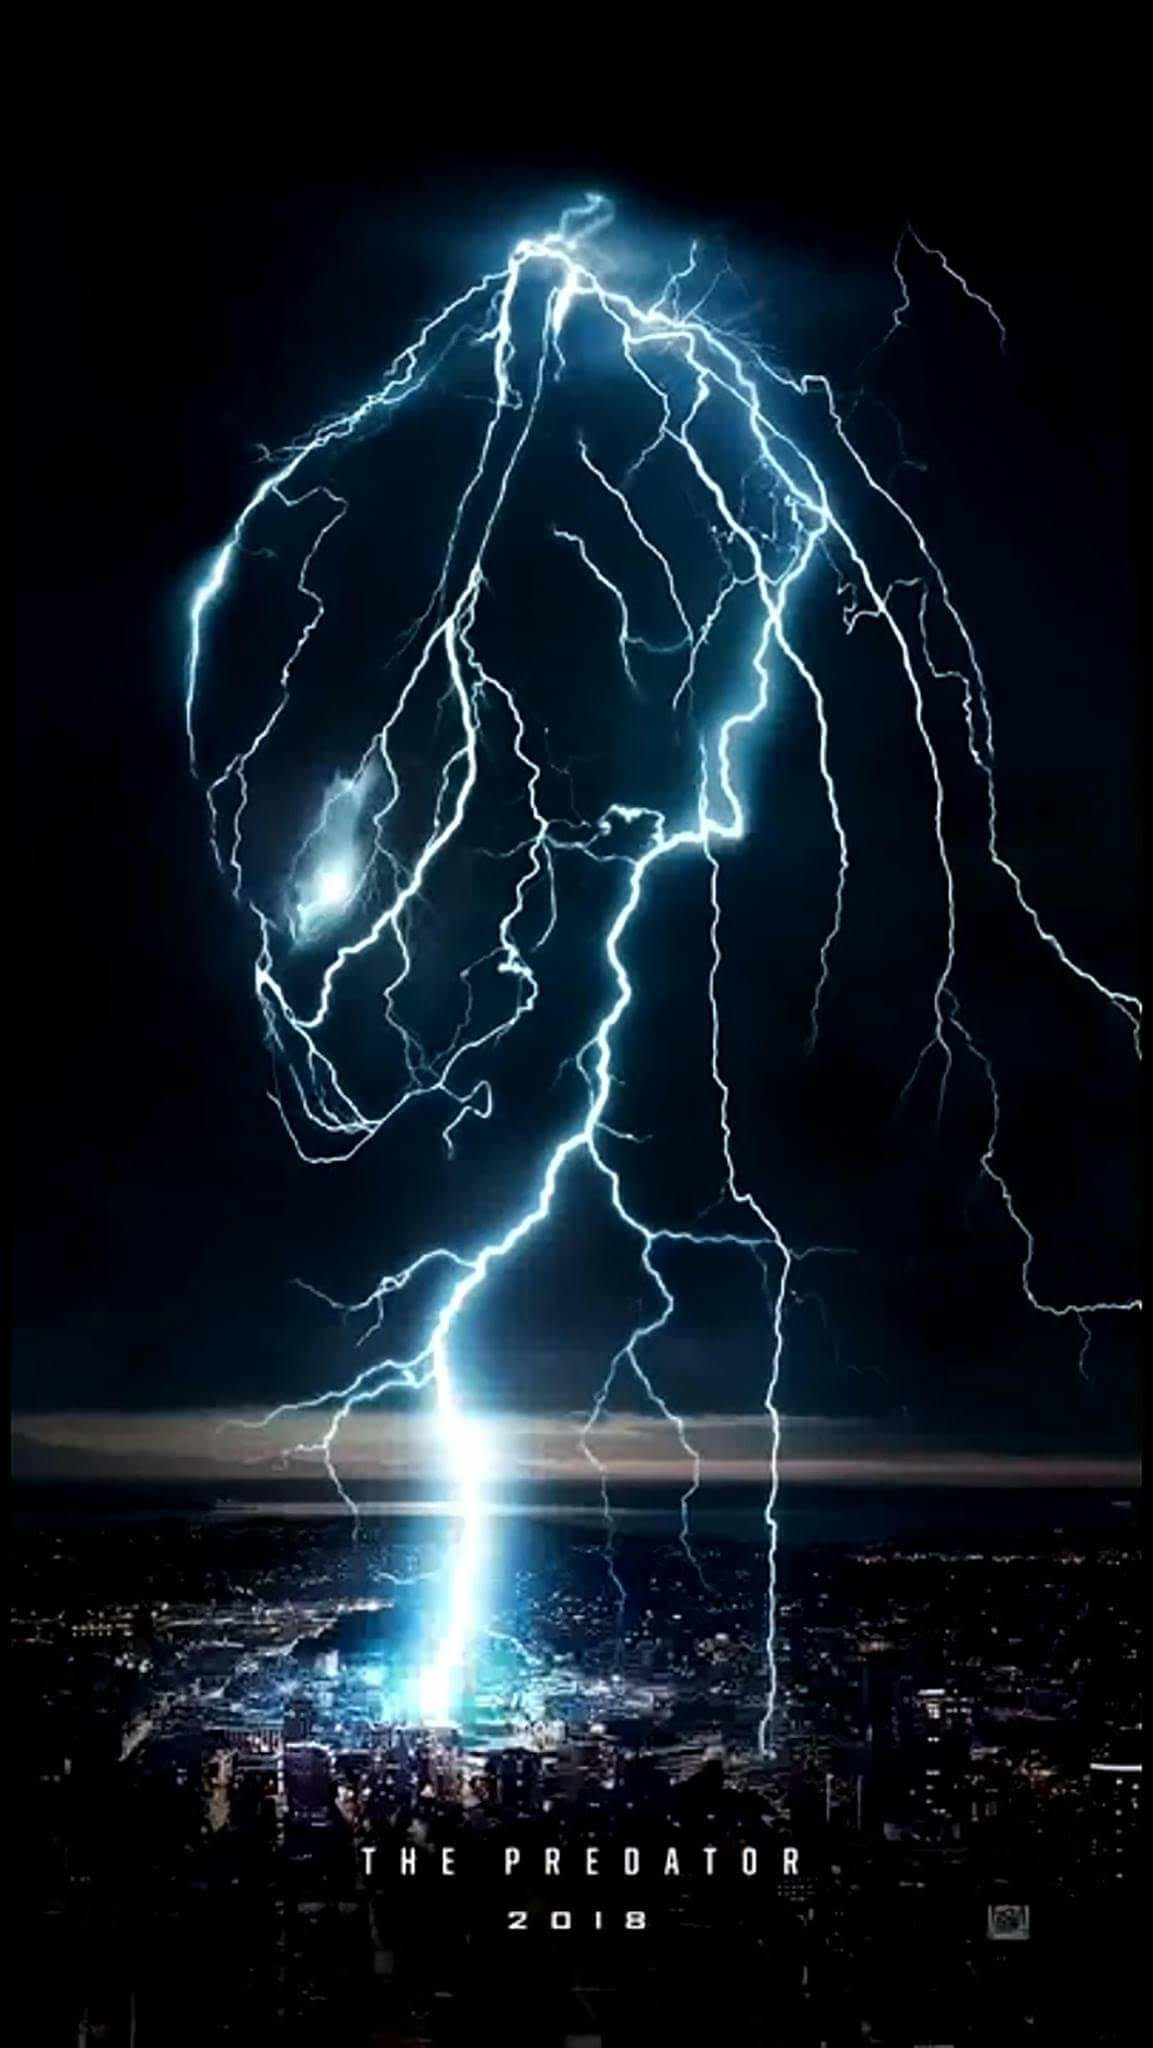 Predator 2018! Teaser and Poster! Dannie's got the ...